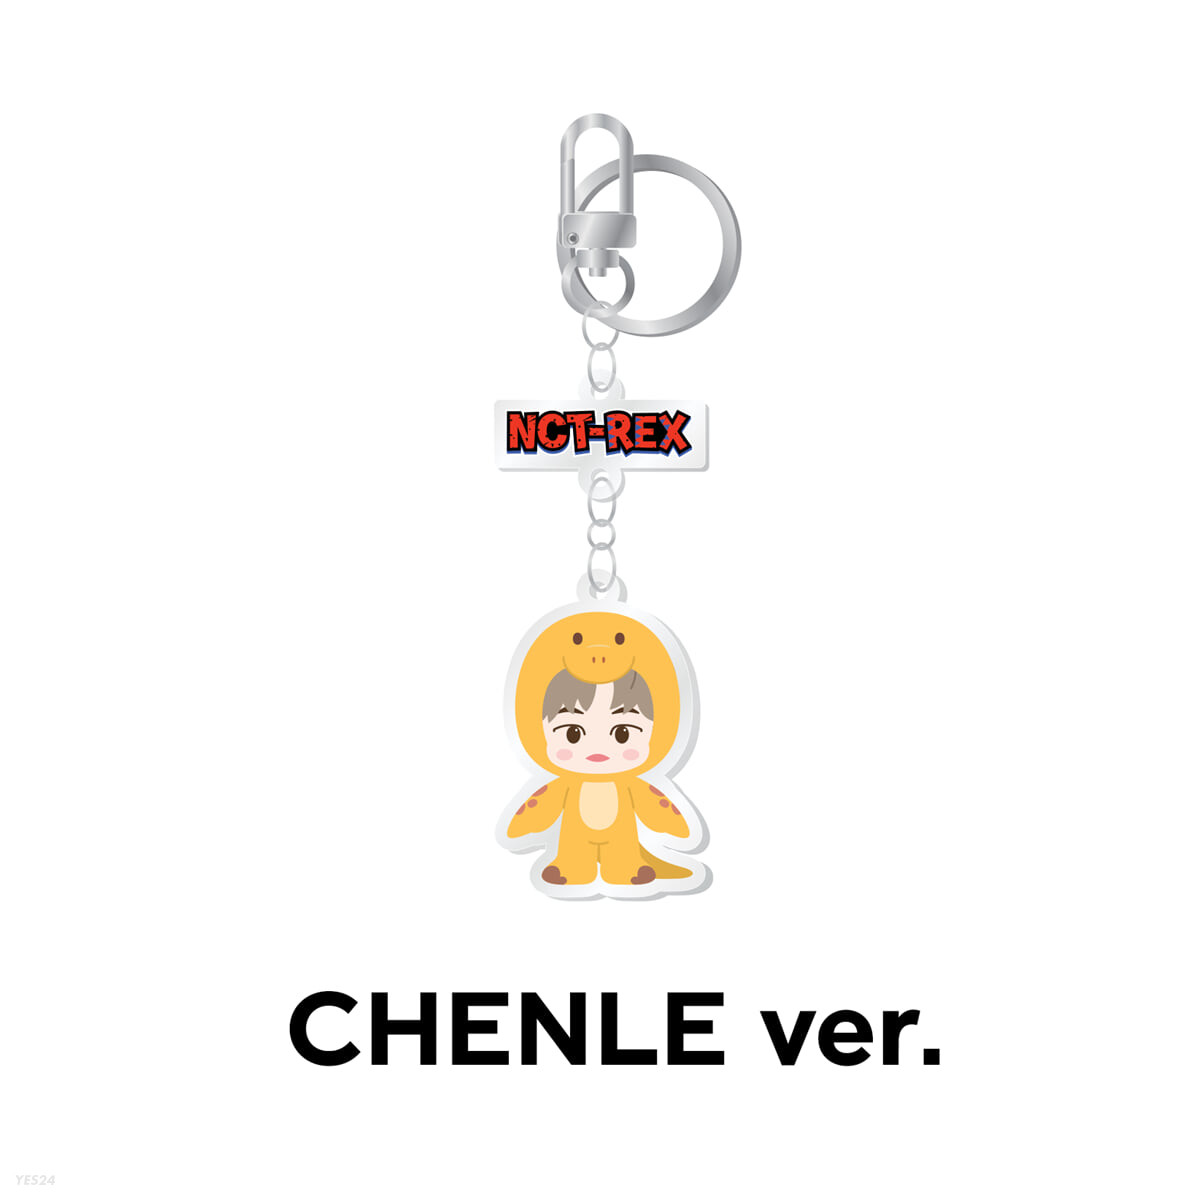 [CHENLE] ACRYLIC KEY RING - NCT DREAM X PINKFONG